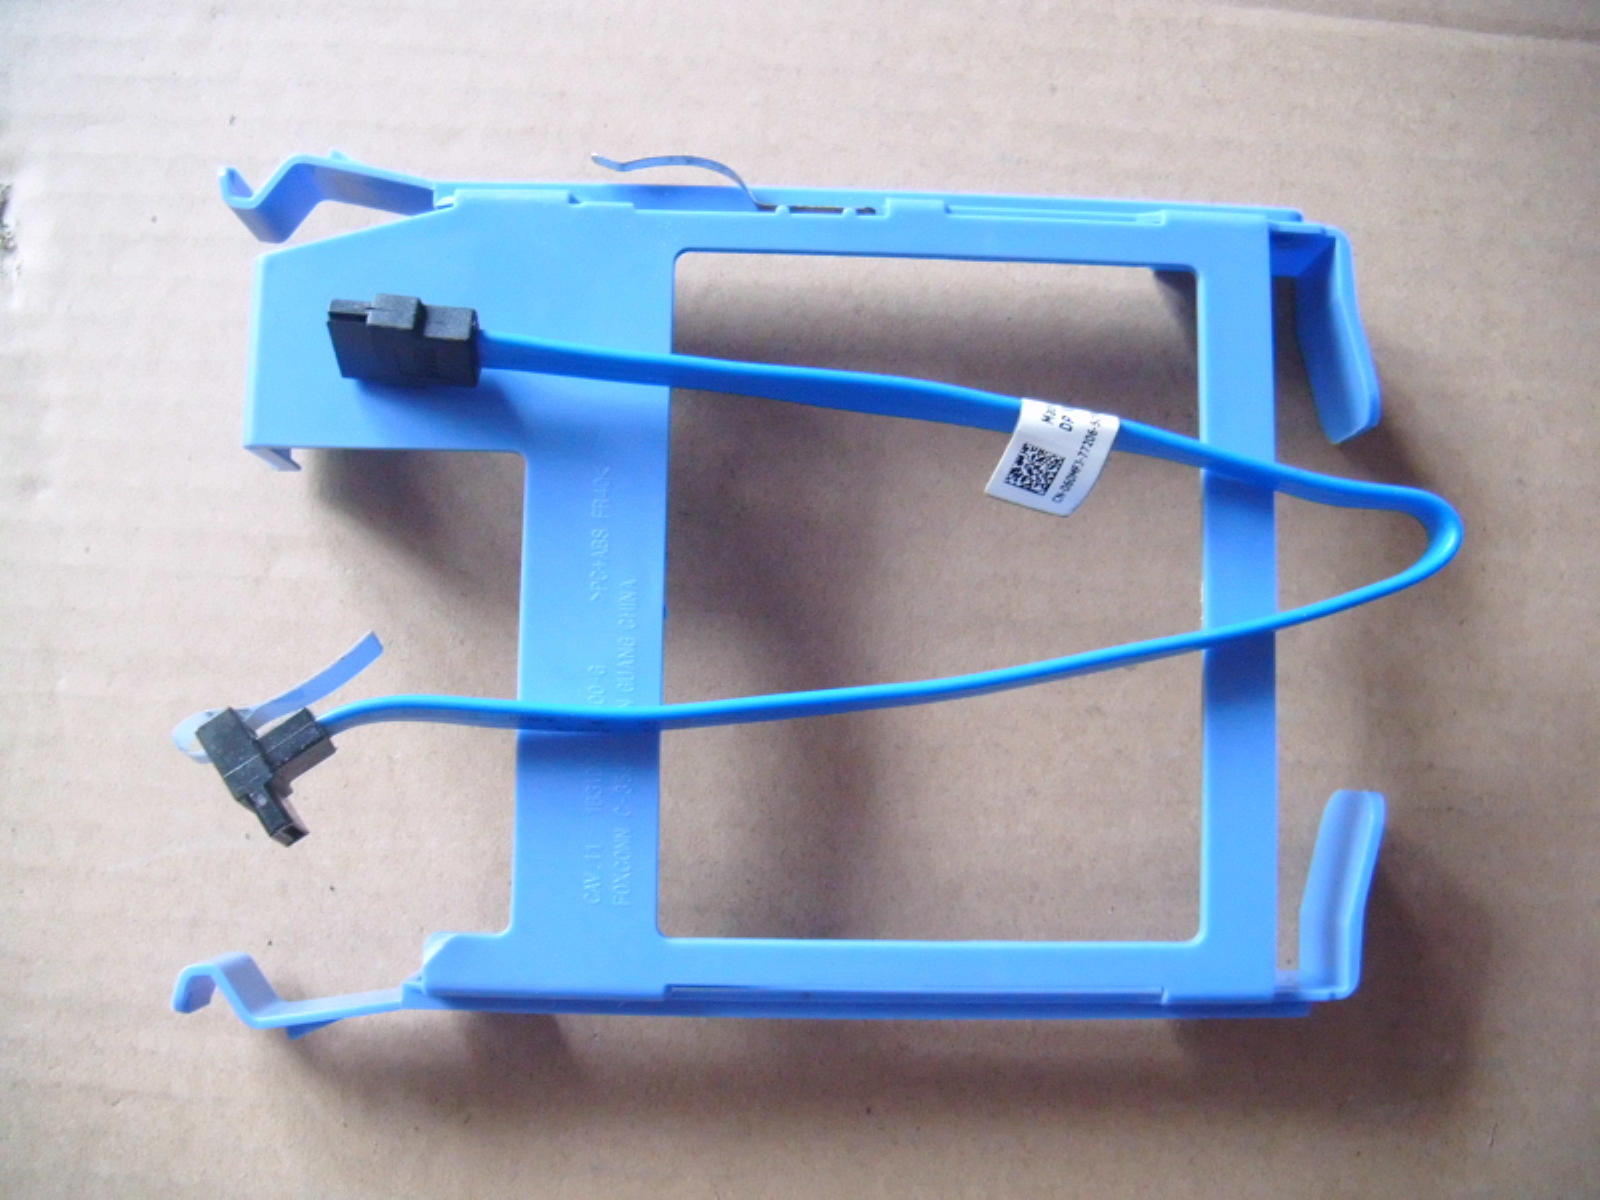 Primary image for Dell 3020 7020 9020 SFF SSD HDD Hard Drive Caddy Bracket 1B31D2600 px60023 dn8my